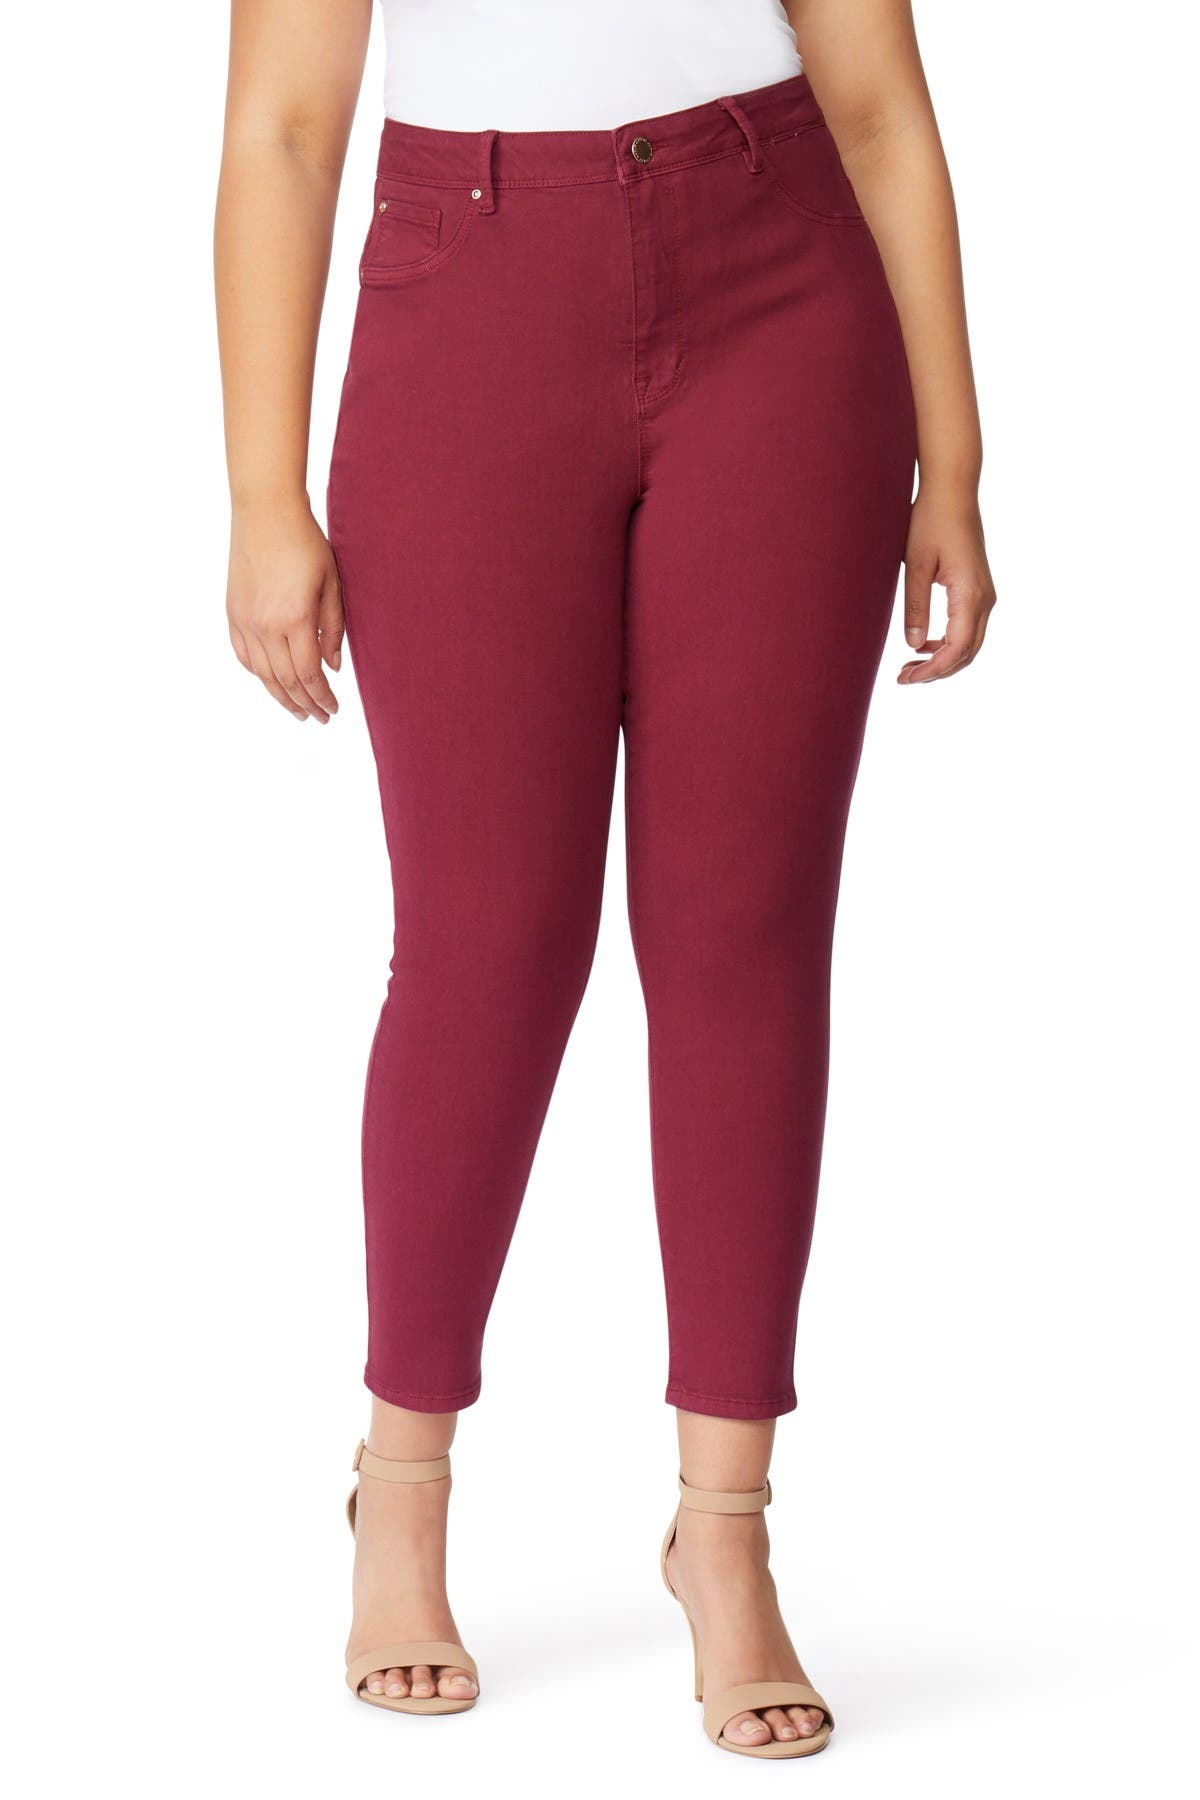 Image of Curve Appeal Solid High Waist Compression Jeggings